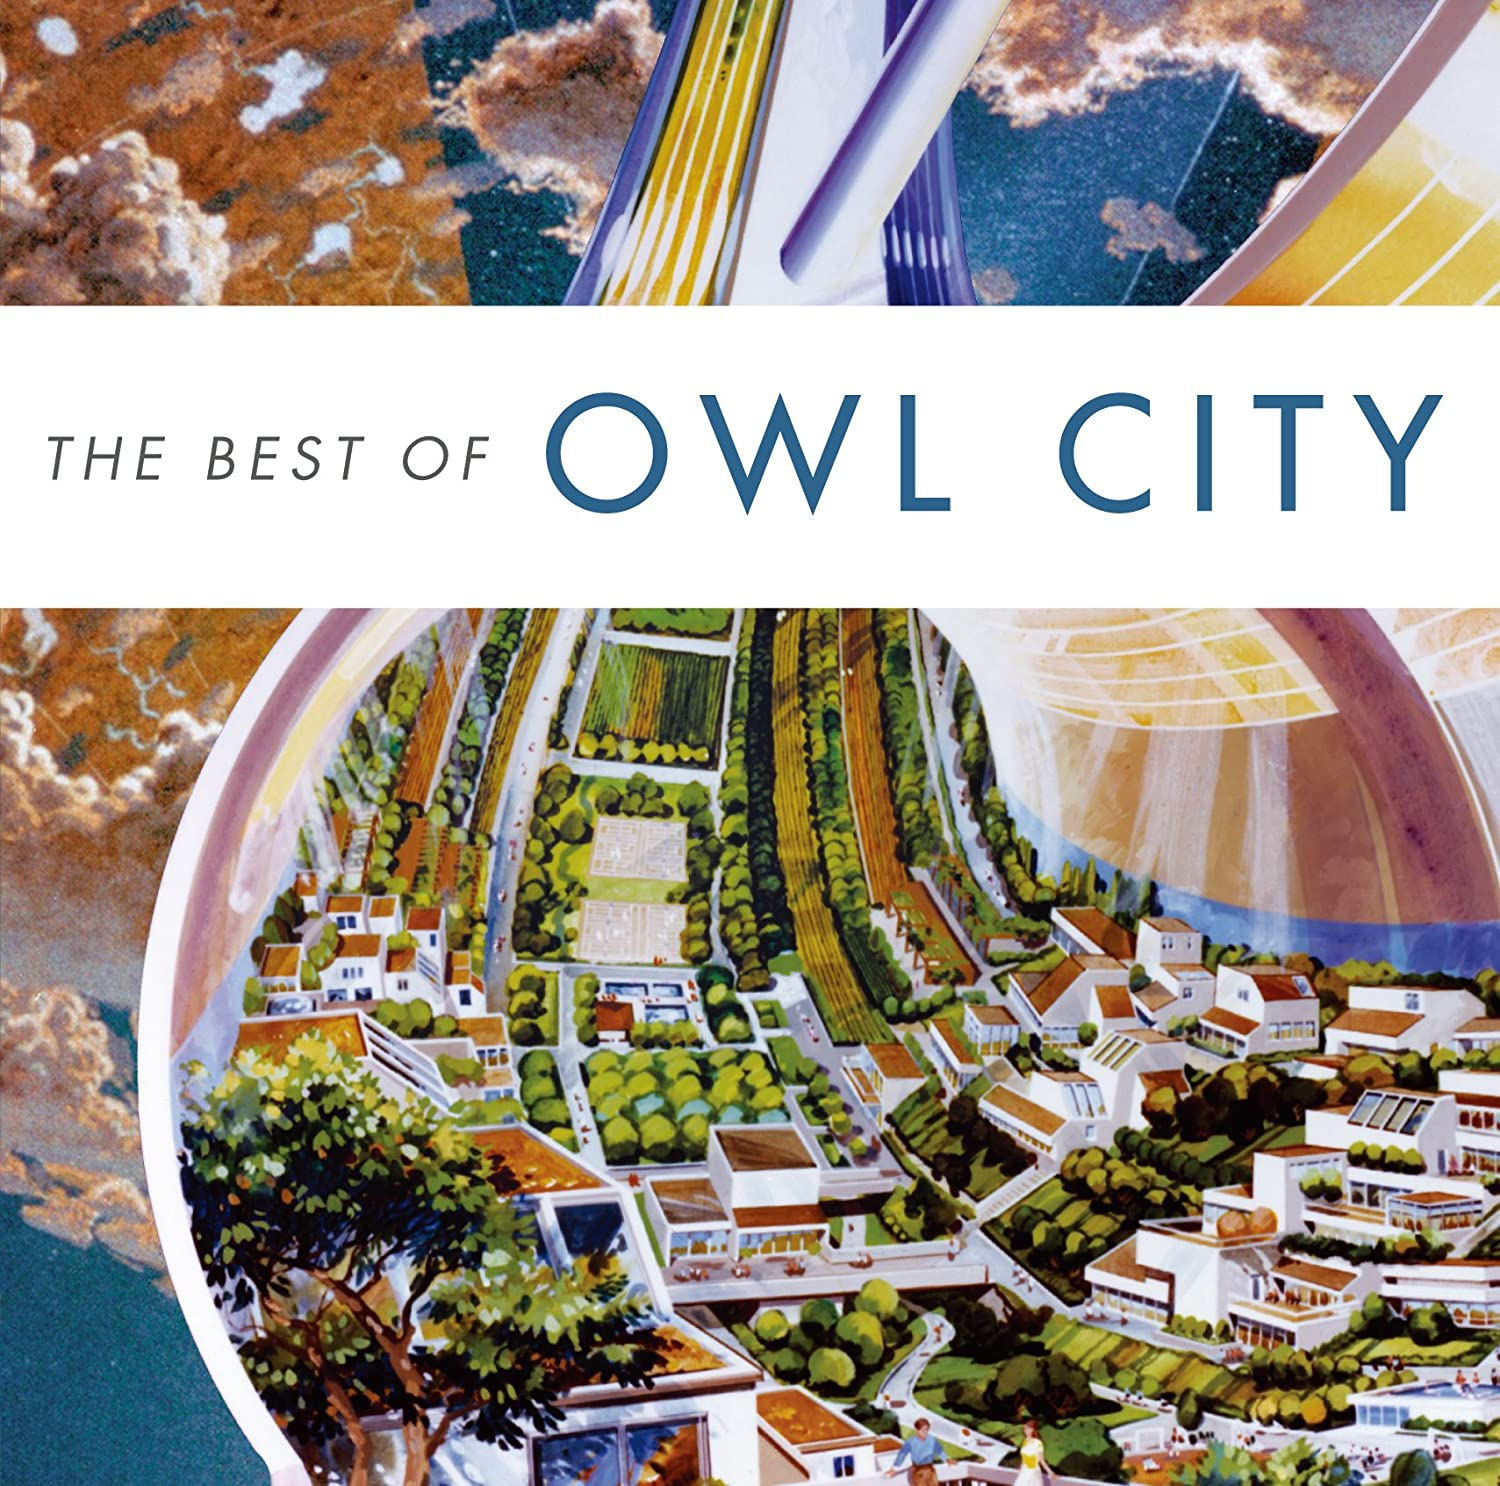 The Best Of Owl City